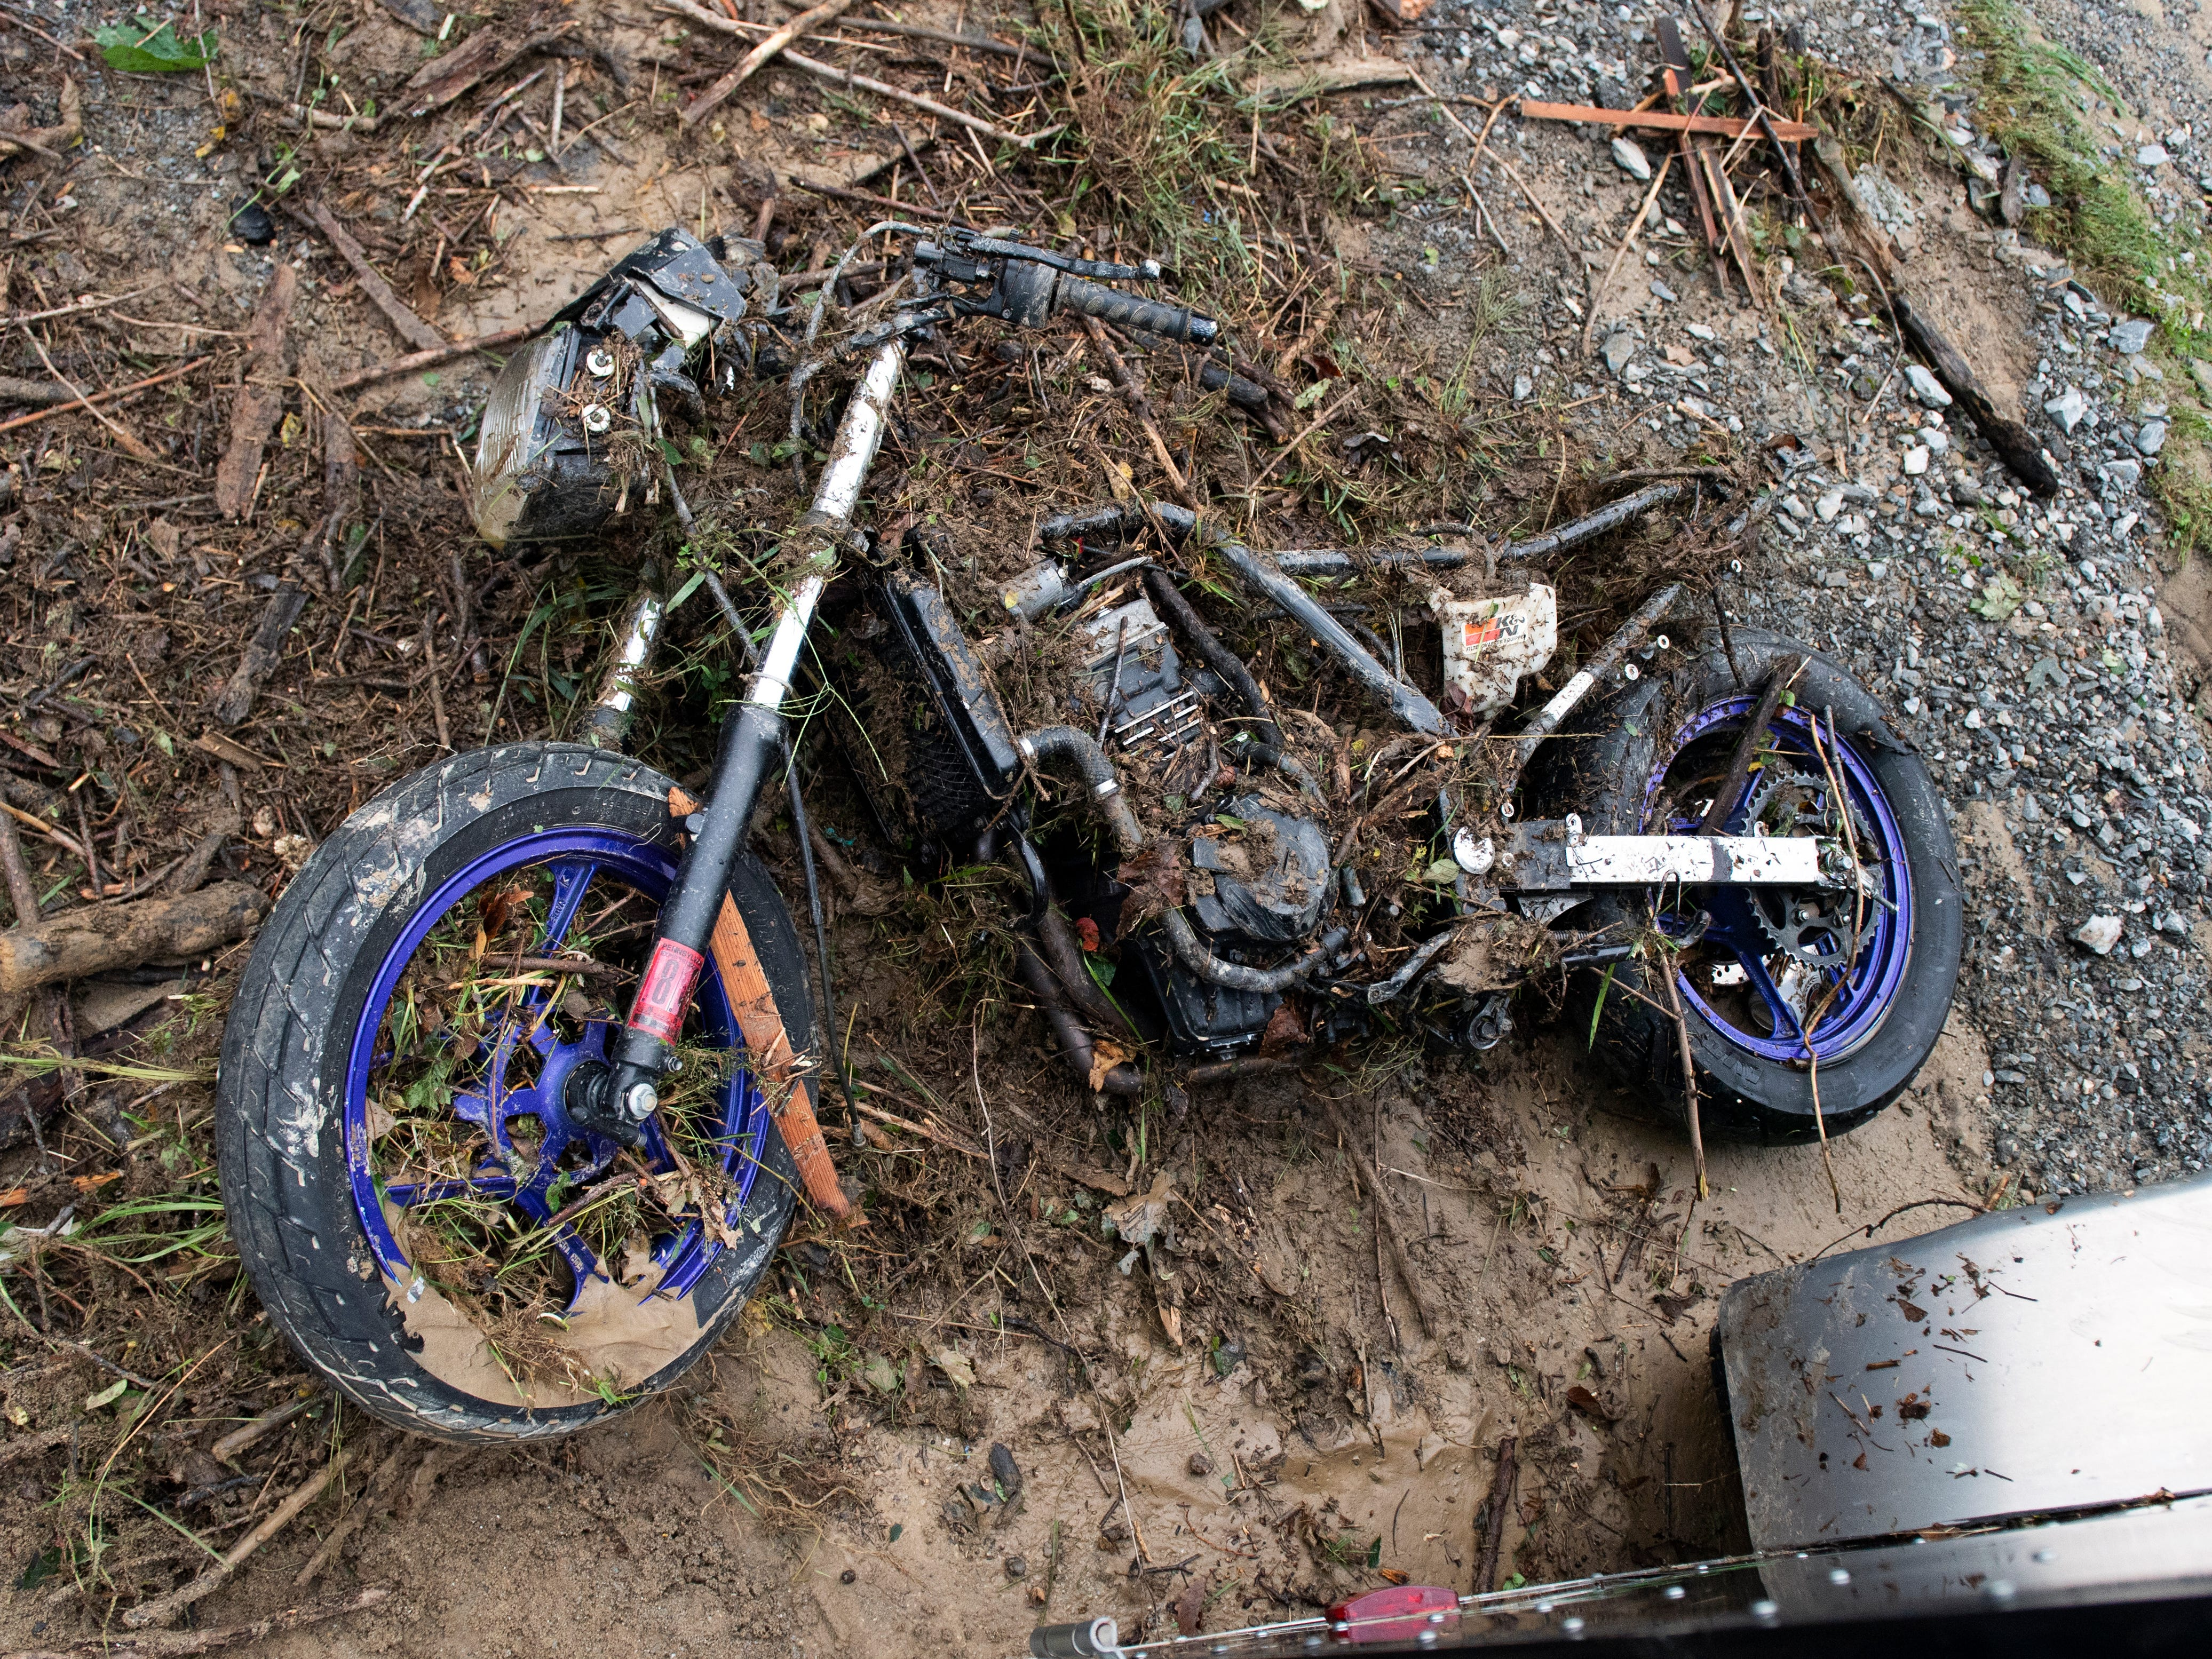 Mike Bray's 1996 250 Ninja lays mangled on the ground after he pulled it out from under a trailer, Saturday, September 1, 2018. Heavy rains flooded on Friday night flooded much of York County, leaving many roads closed and some destroyed.